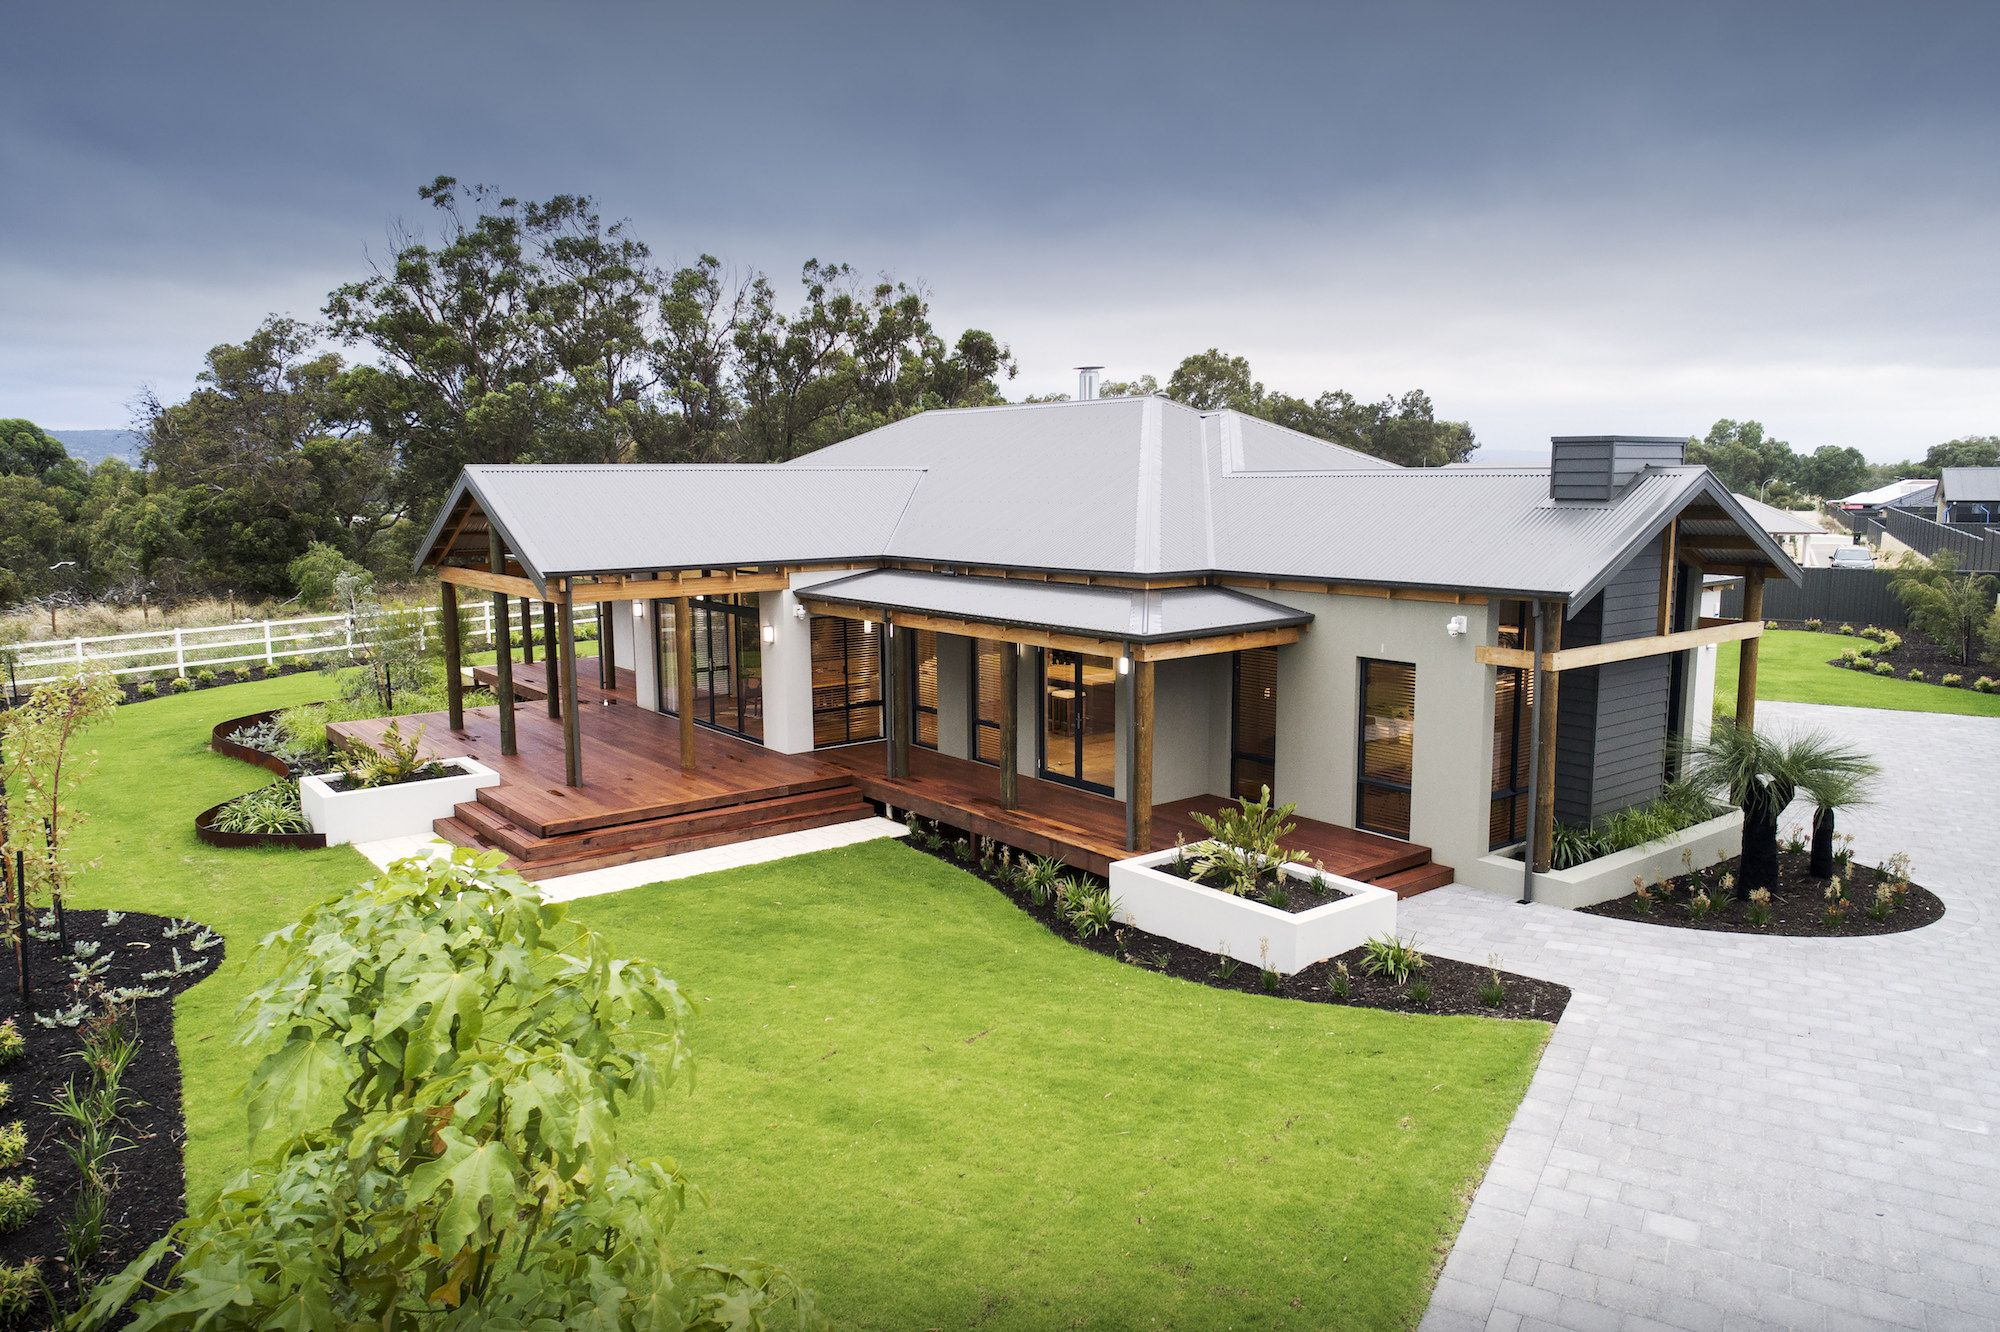 Holiday Home Designs, Builders That Build A Holiday House | The Karridale  Retreat